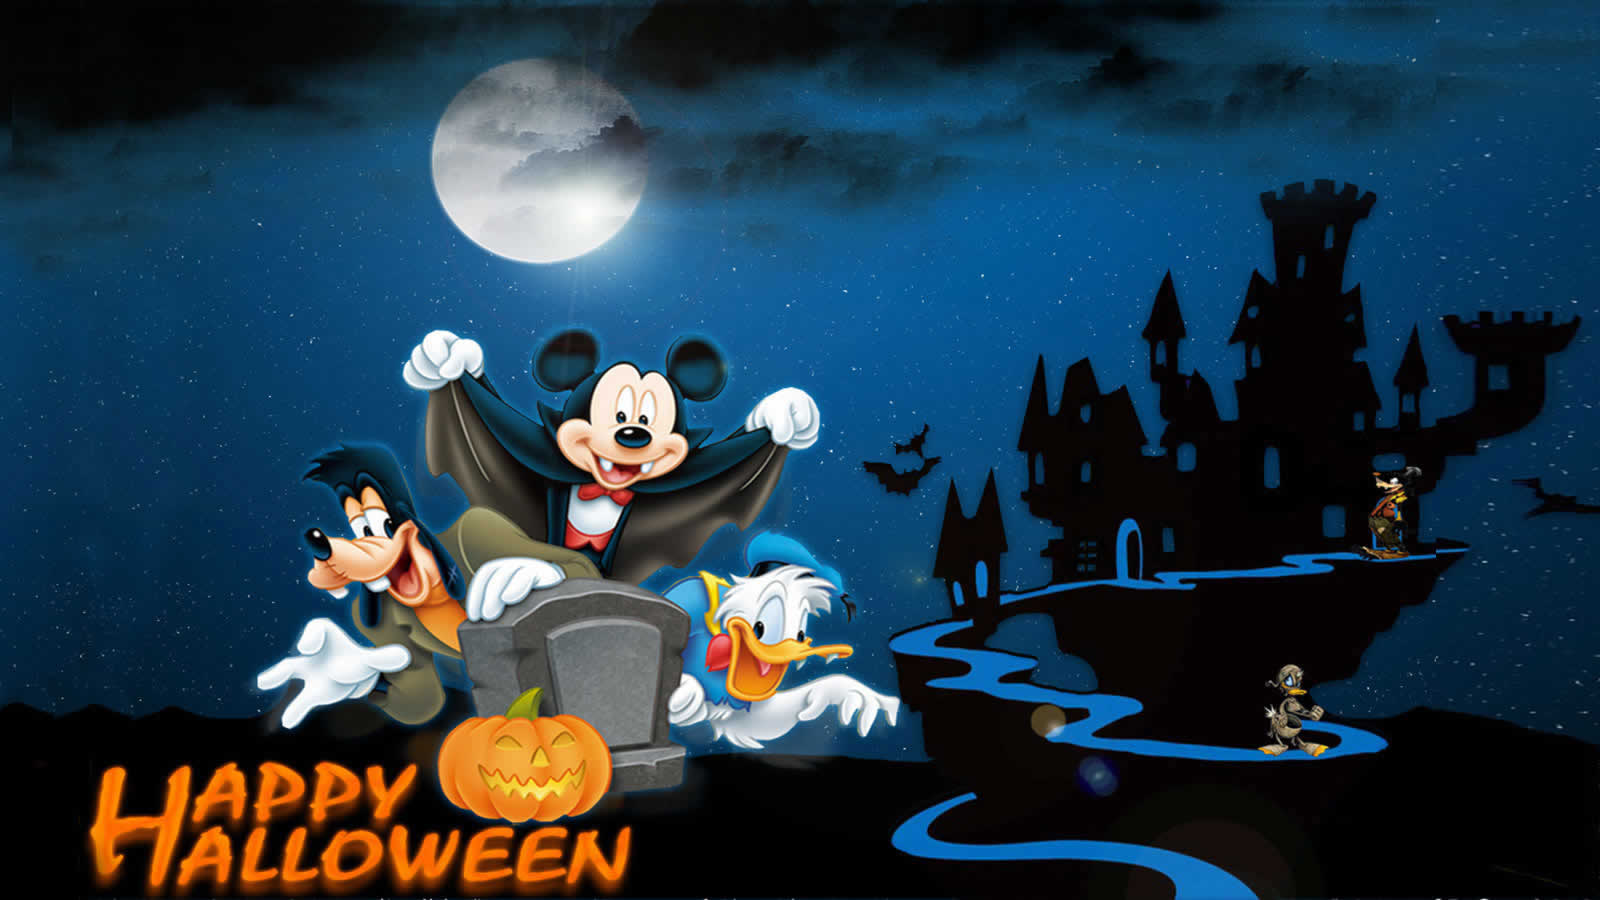 Looney Tunes Halloween Wallpapers Halloween Movie Wallpapers 1600x900